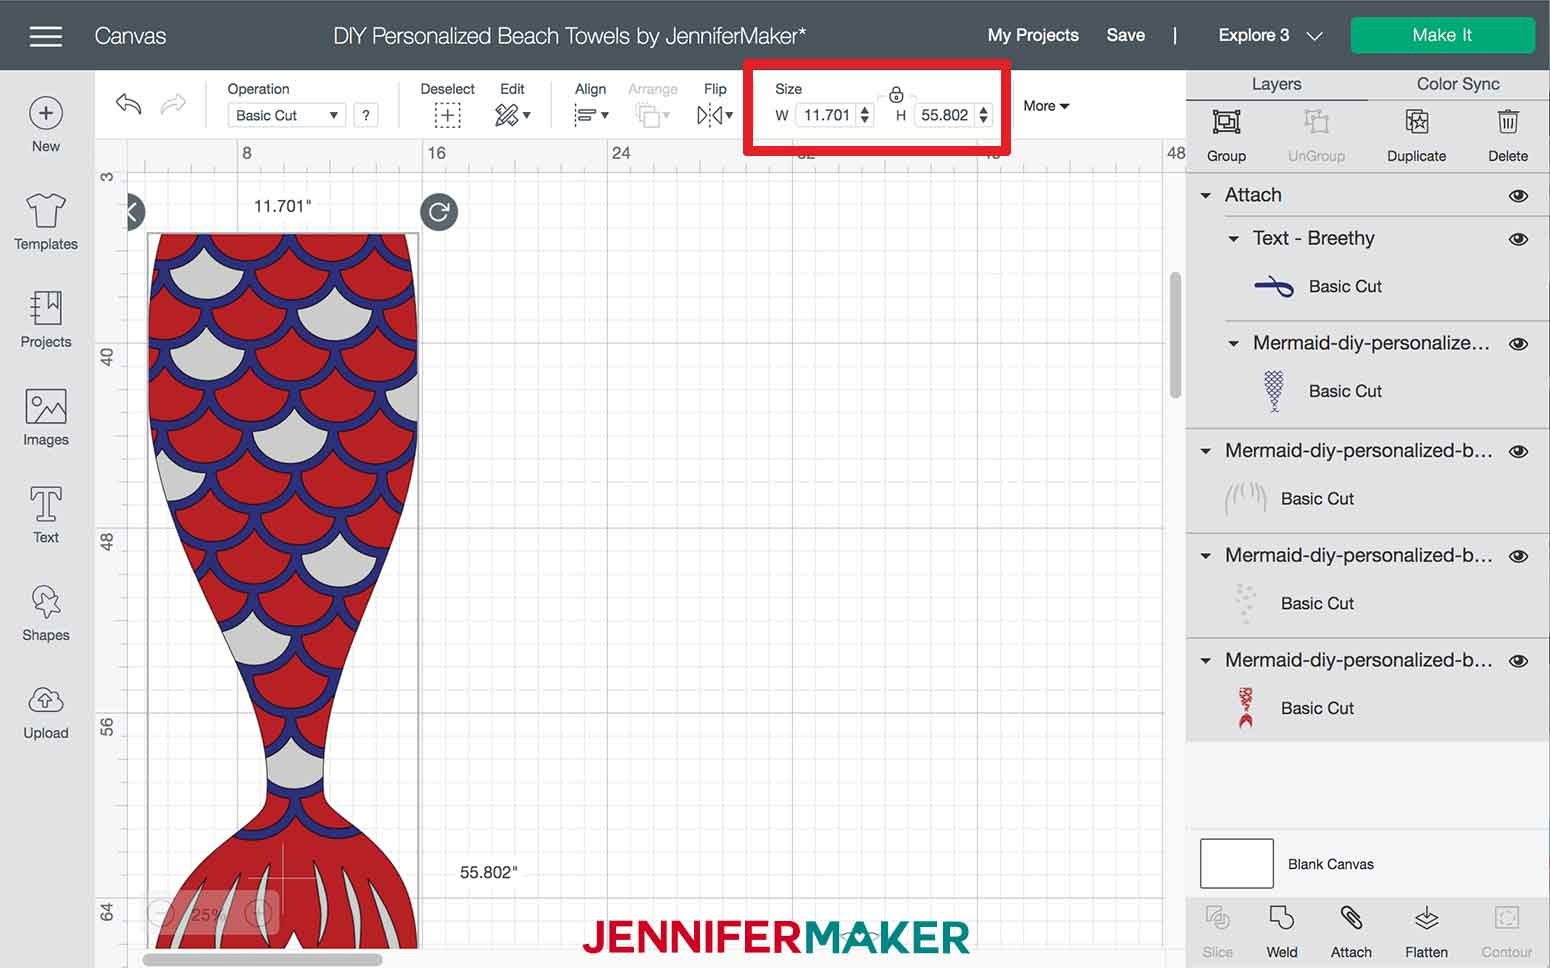 Confirming design length in Design Space for the Mermaid DIY Personalized Beach Towels